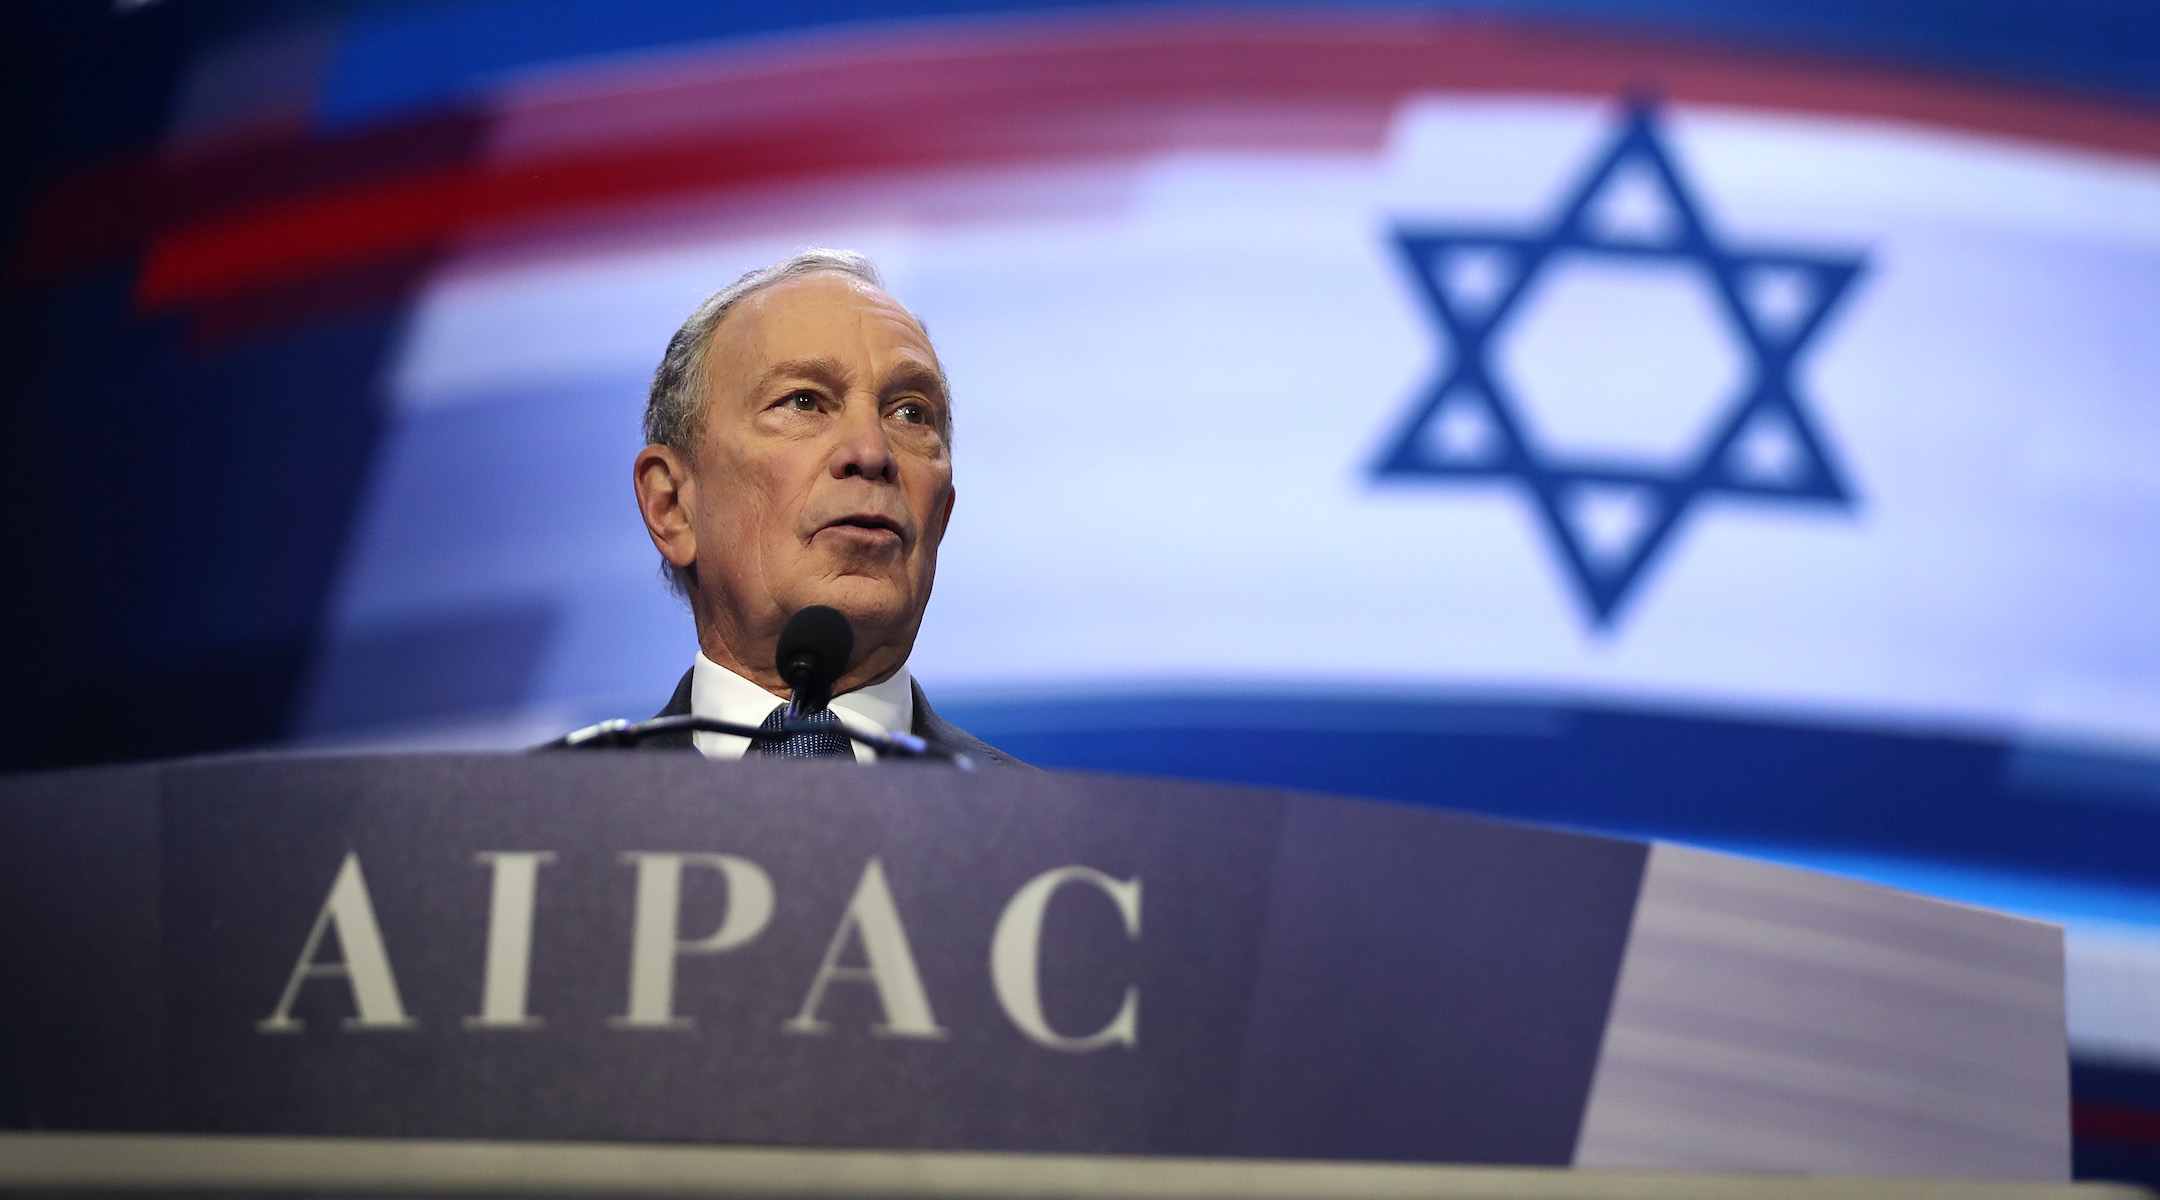 Democratic presidential candidate Mike Bloomberg appears in person at the AIPAC policy conference in Washington, March 2, 2020. (JTA/Saul Loeb/Getty Images)